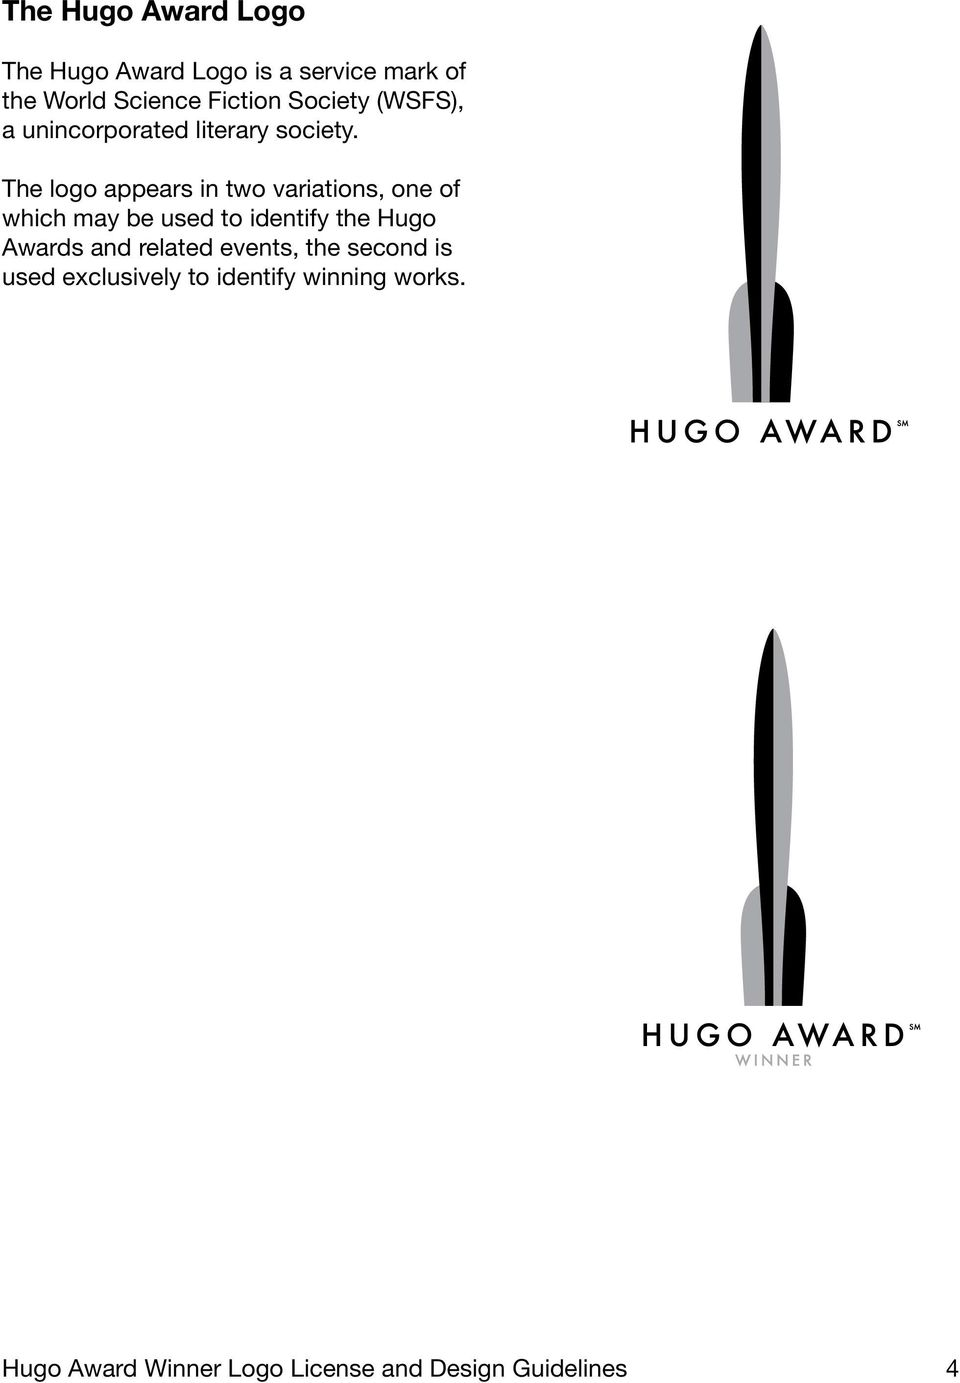 The logo appears in two variations, one of which may be used to identify the Hugo Awards